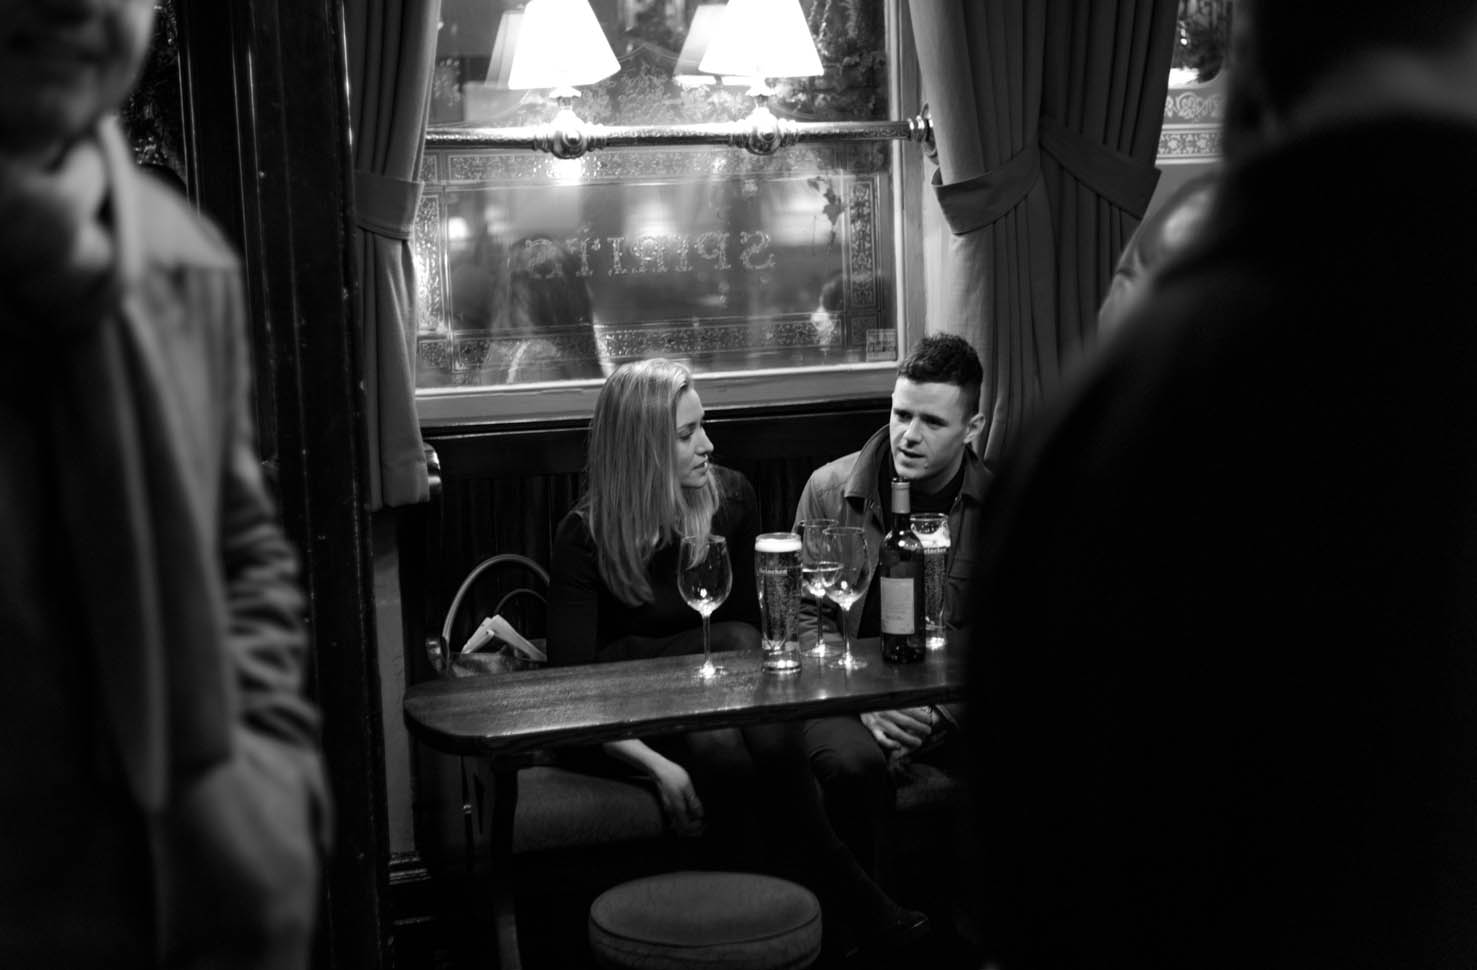 Couple in the pub (© 2013 David Ringel)